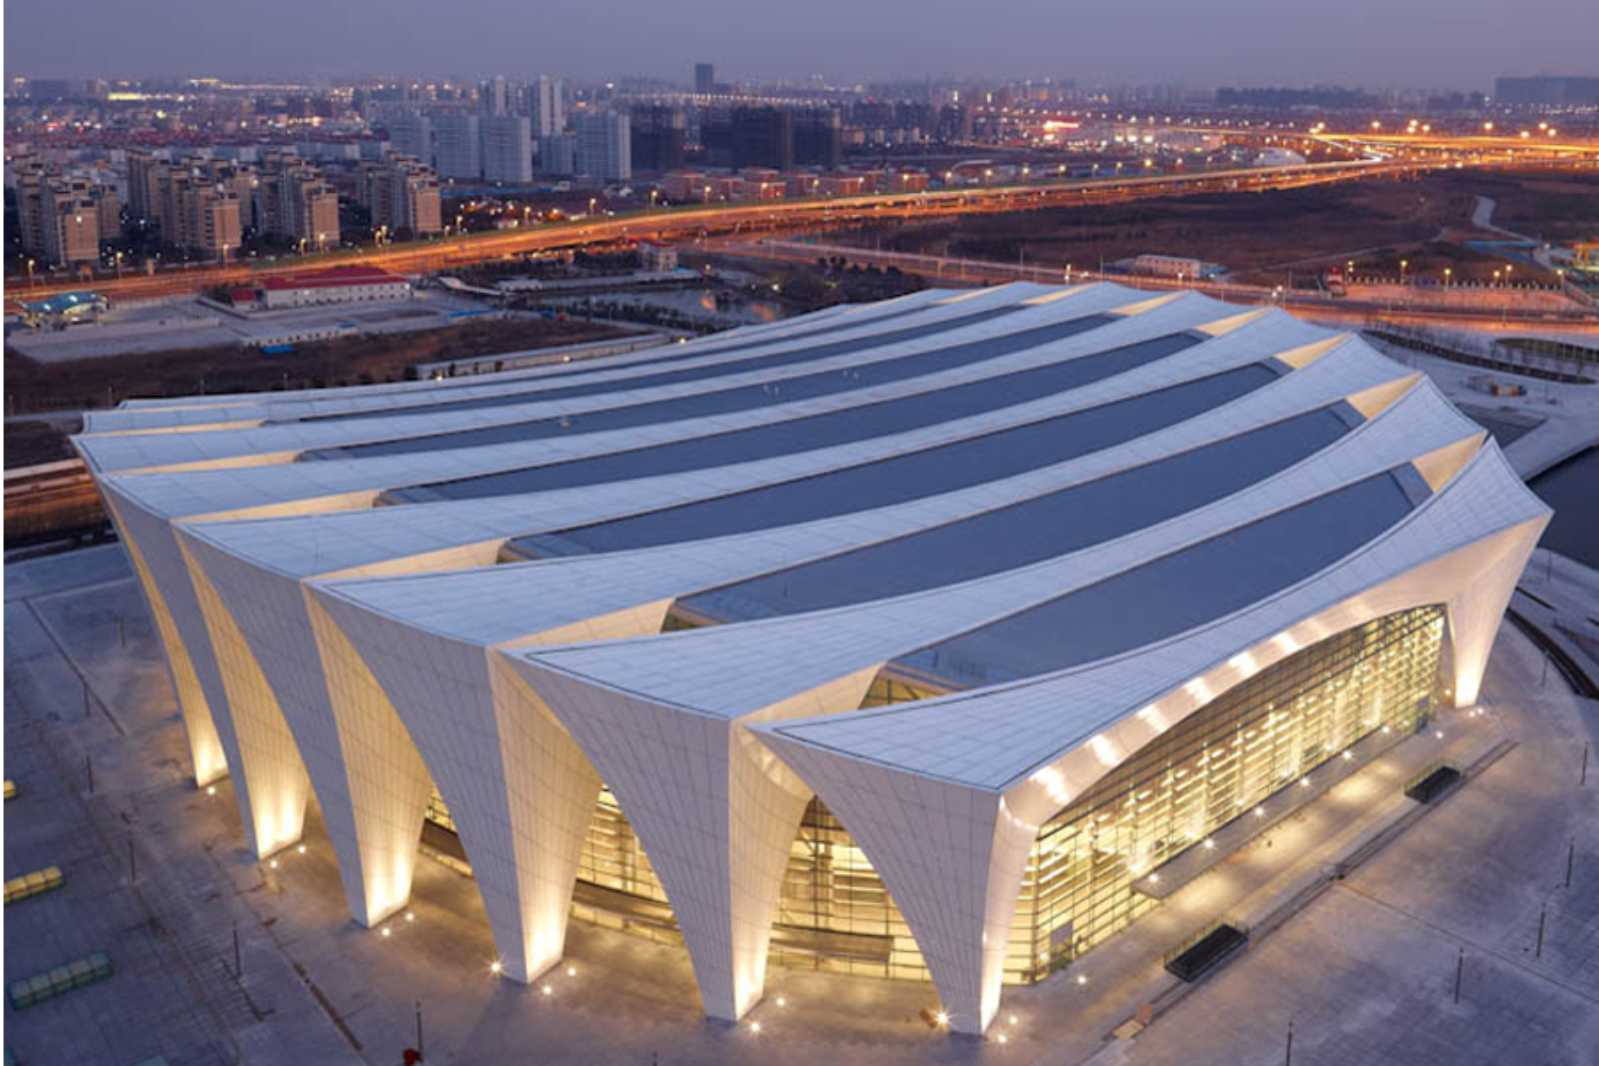 Shanghai Oriental Sports Center By Gmp Architekten